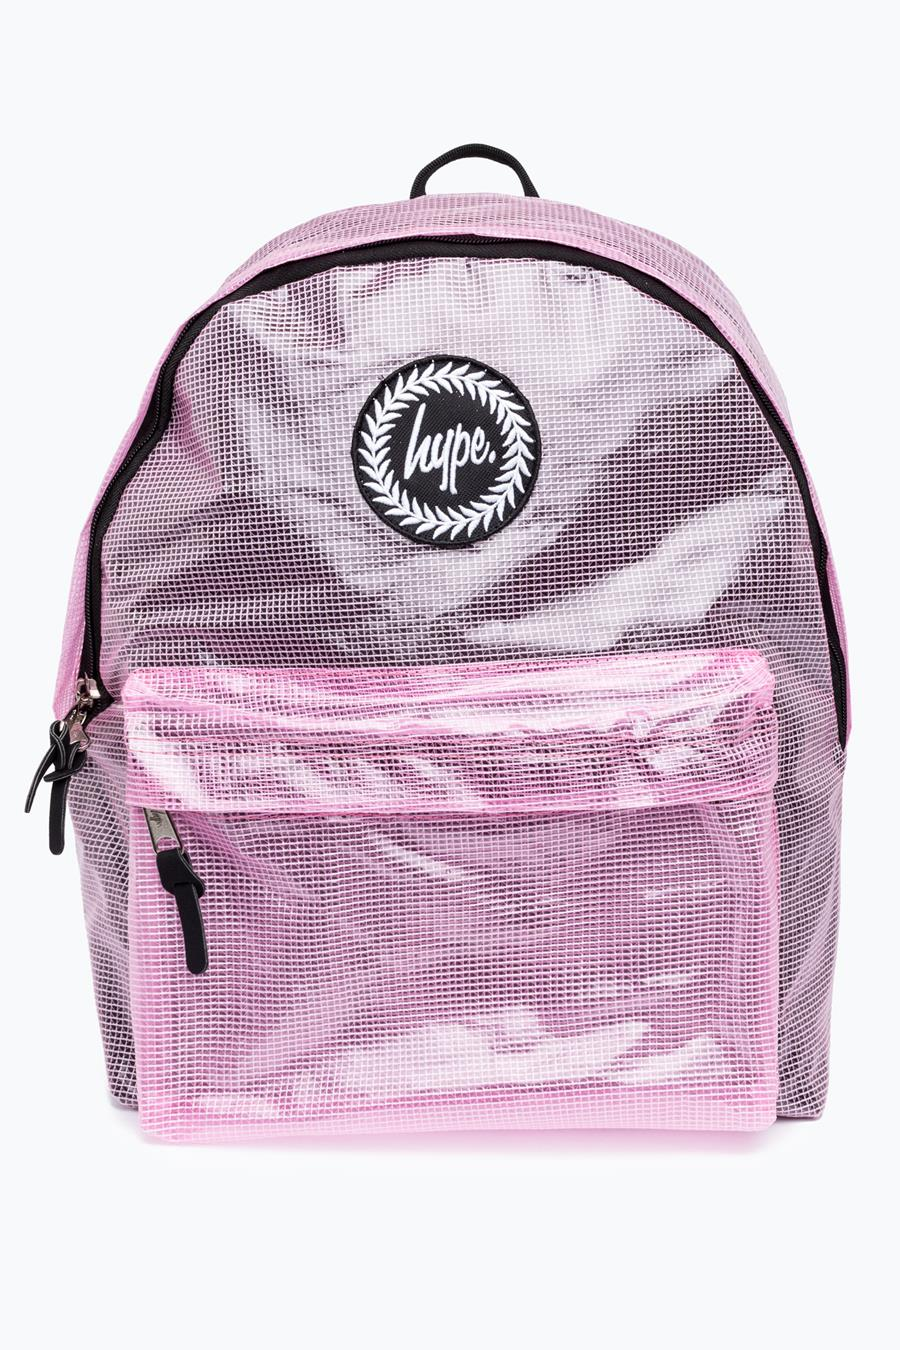 cc0e0616dc0b Hype Peach Tarpaulin Backpack – JustHype ltd